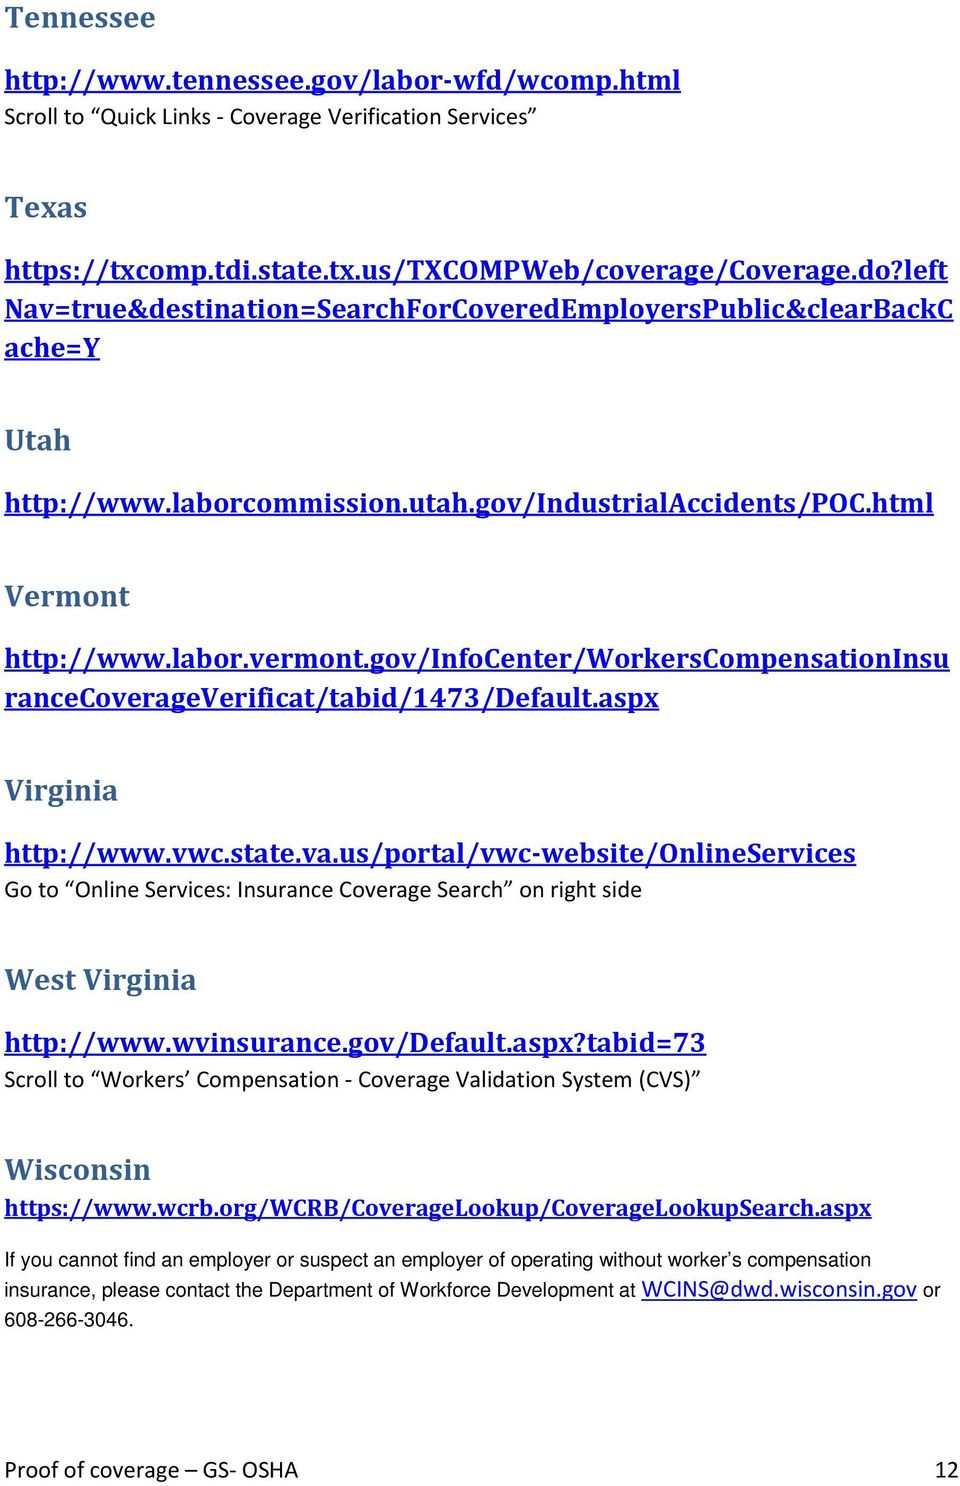 gov/infocenter/workerscompensationinsu rancecoverageverificat/tabid/1473/default.aspx Virginia http://www.vwc.state.va.